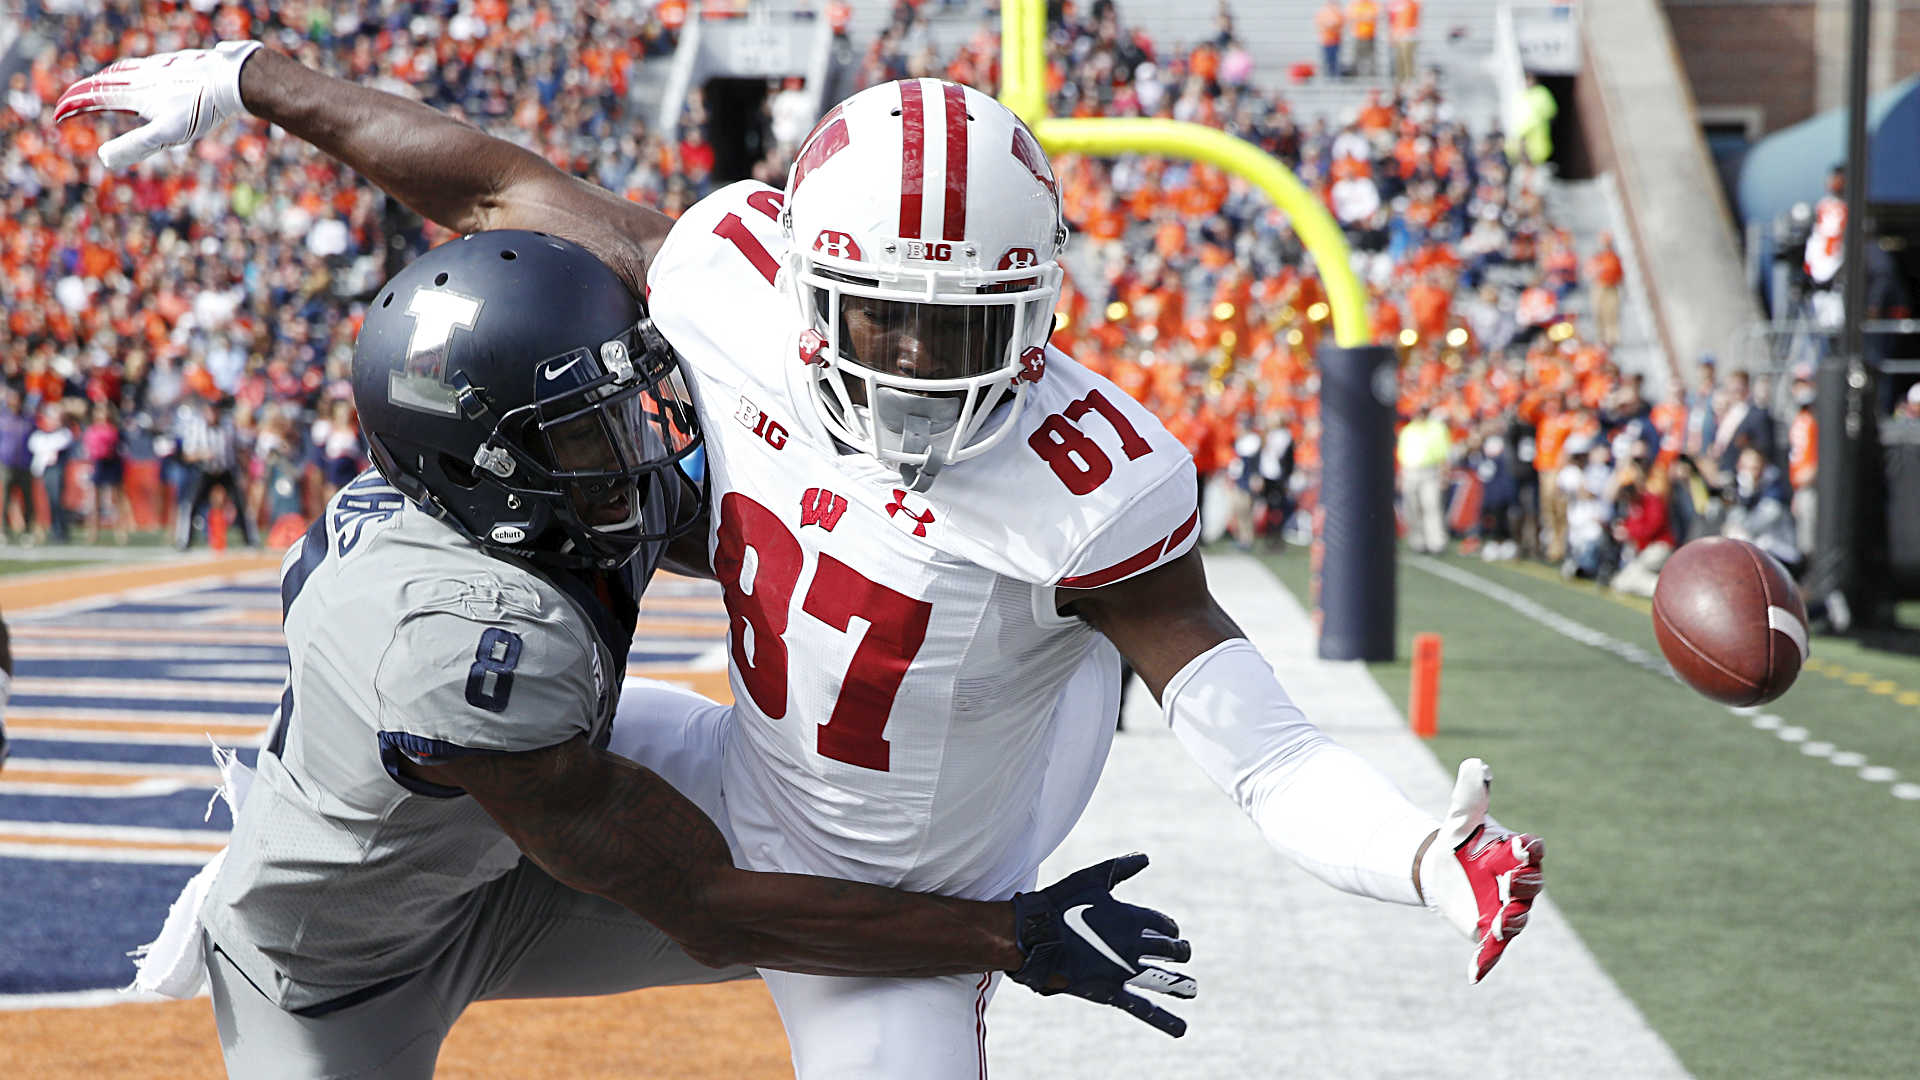 How Wisconsin's stunning upset loss to Illinois affects Big Ten, College Football Playoff races